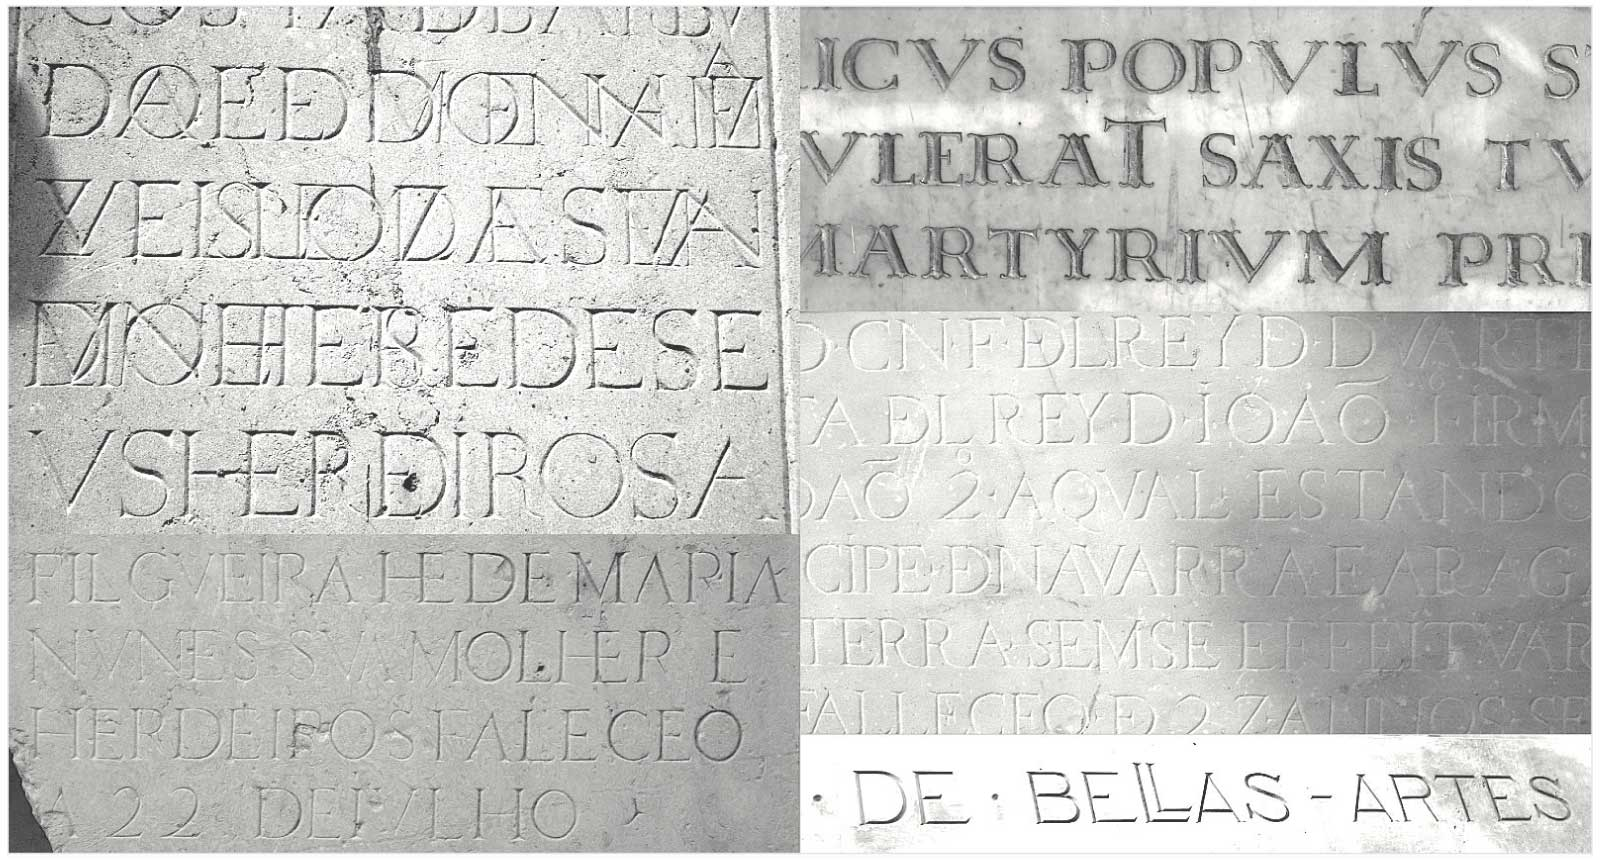 Multi-ligatured capital settings of Le Monde Livre Classic emulate Renaissance inscriptions, hand draws letters found in Italy, Spain and Portugal.